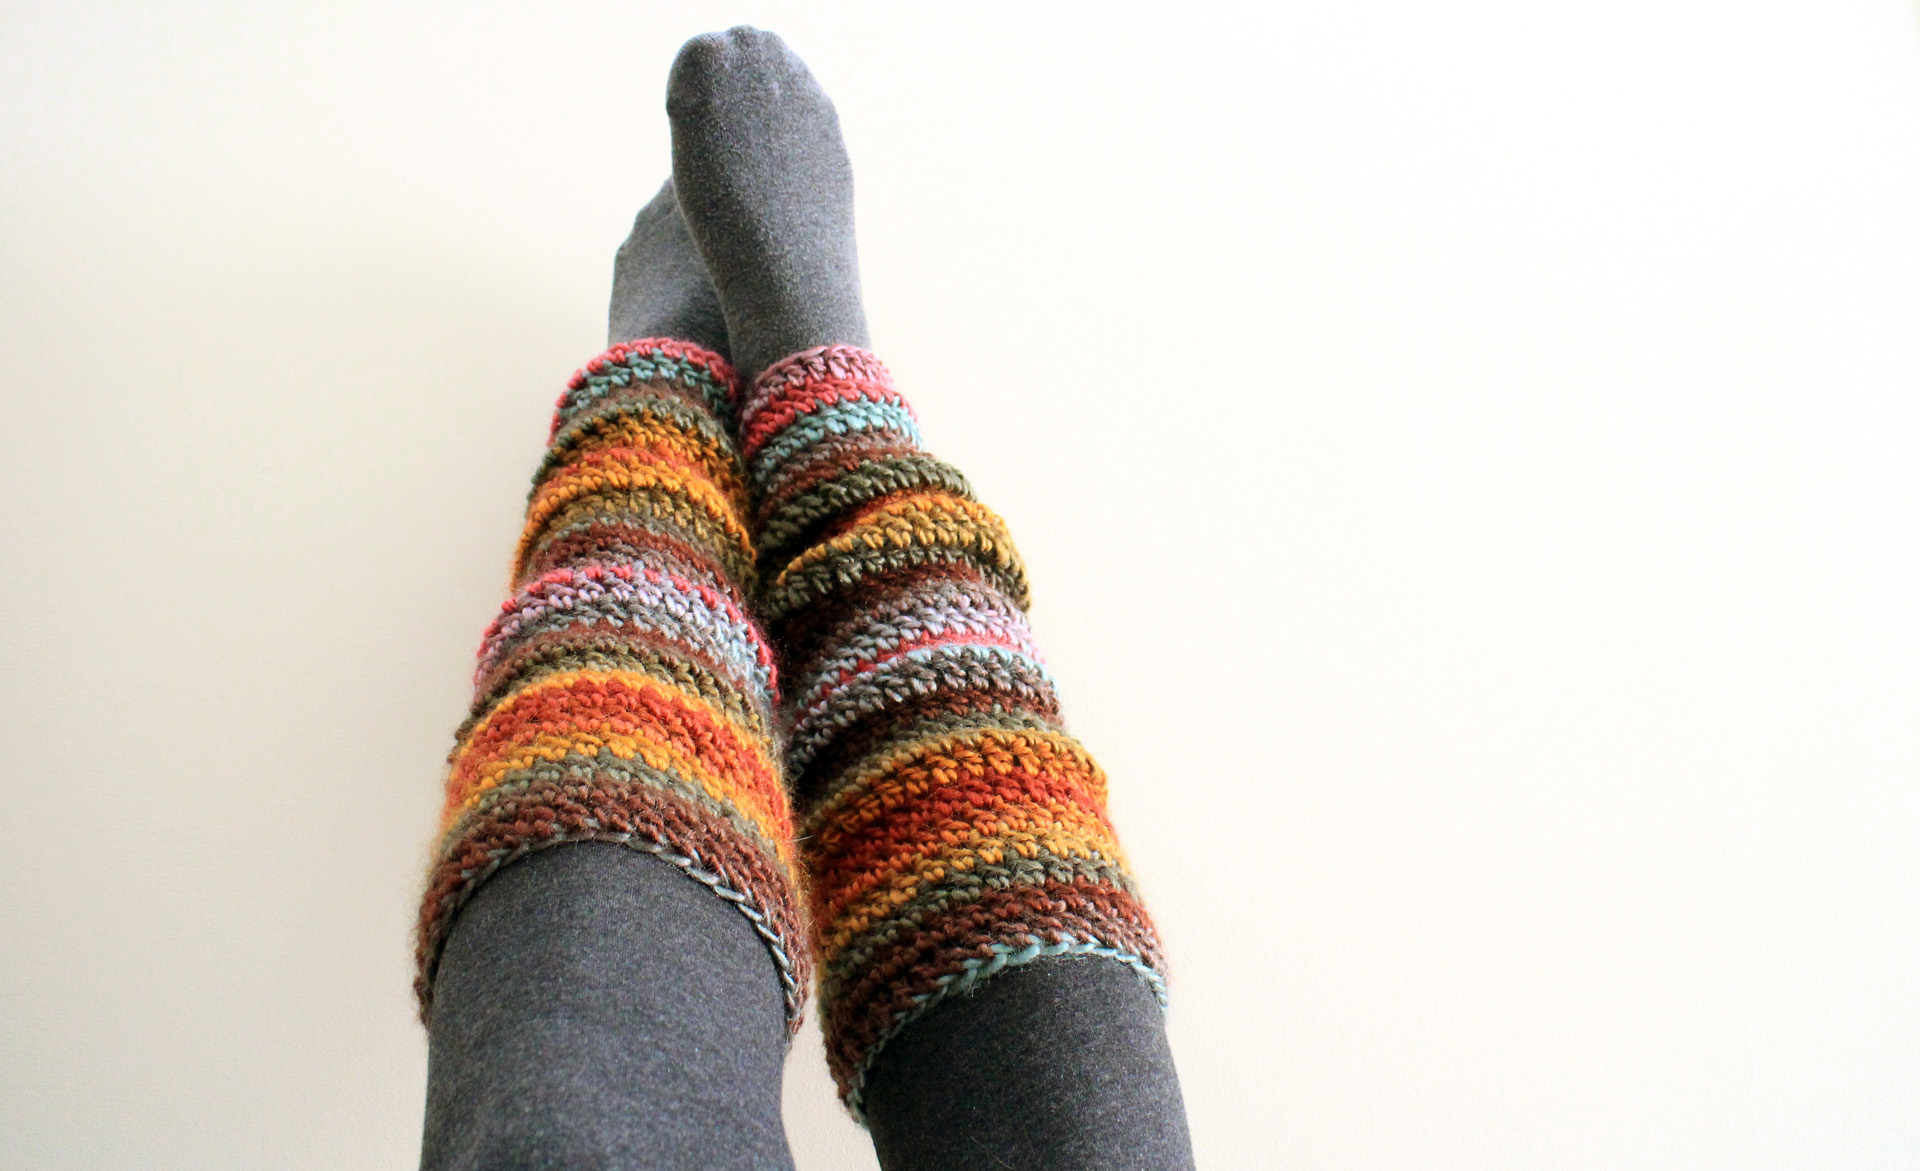 Crochet Leg Warmers : Beginner Crochet Leg Warmers:Video Tutorial and Free Pattern